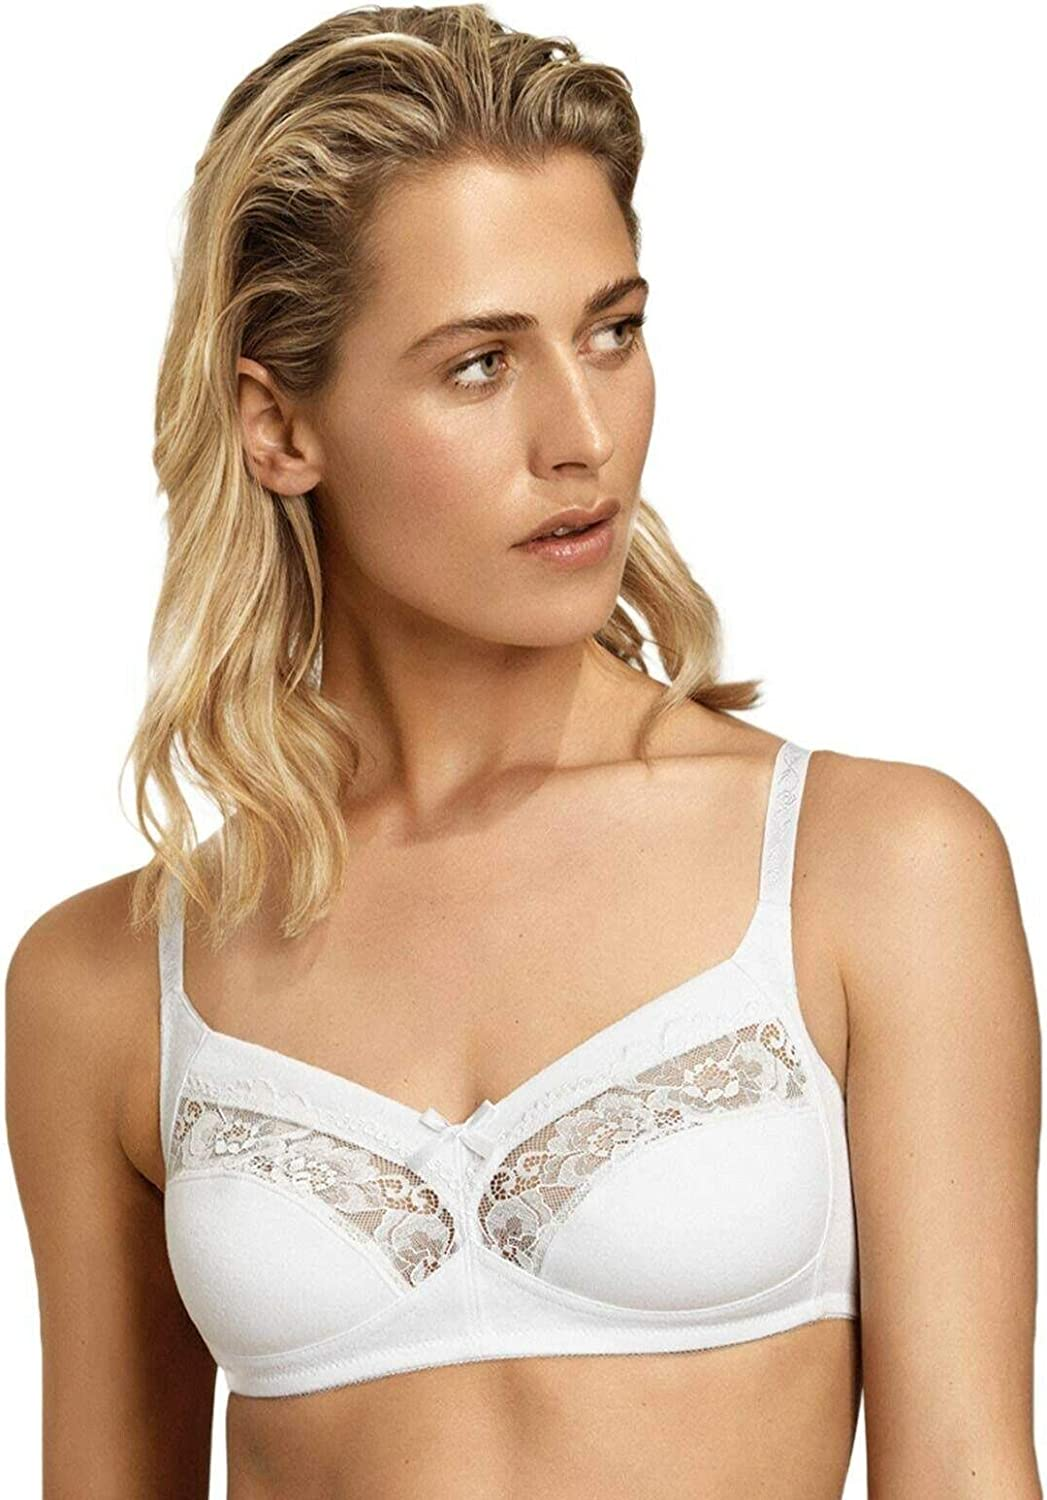 Naturana 2 Pack Non-wired Soft Cup Bra Full Coverage 86136 White Blue